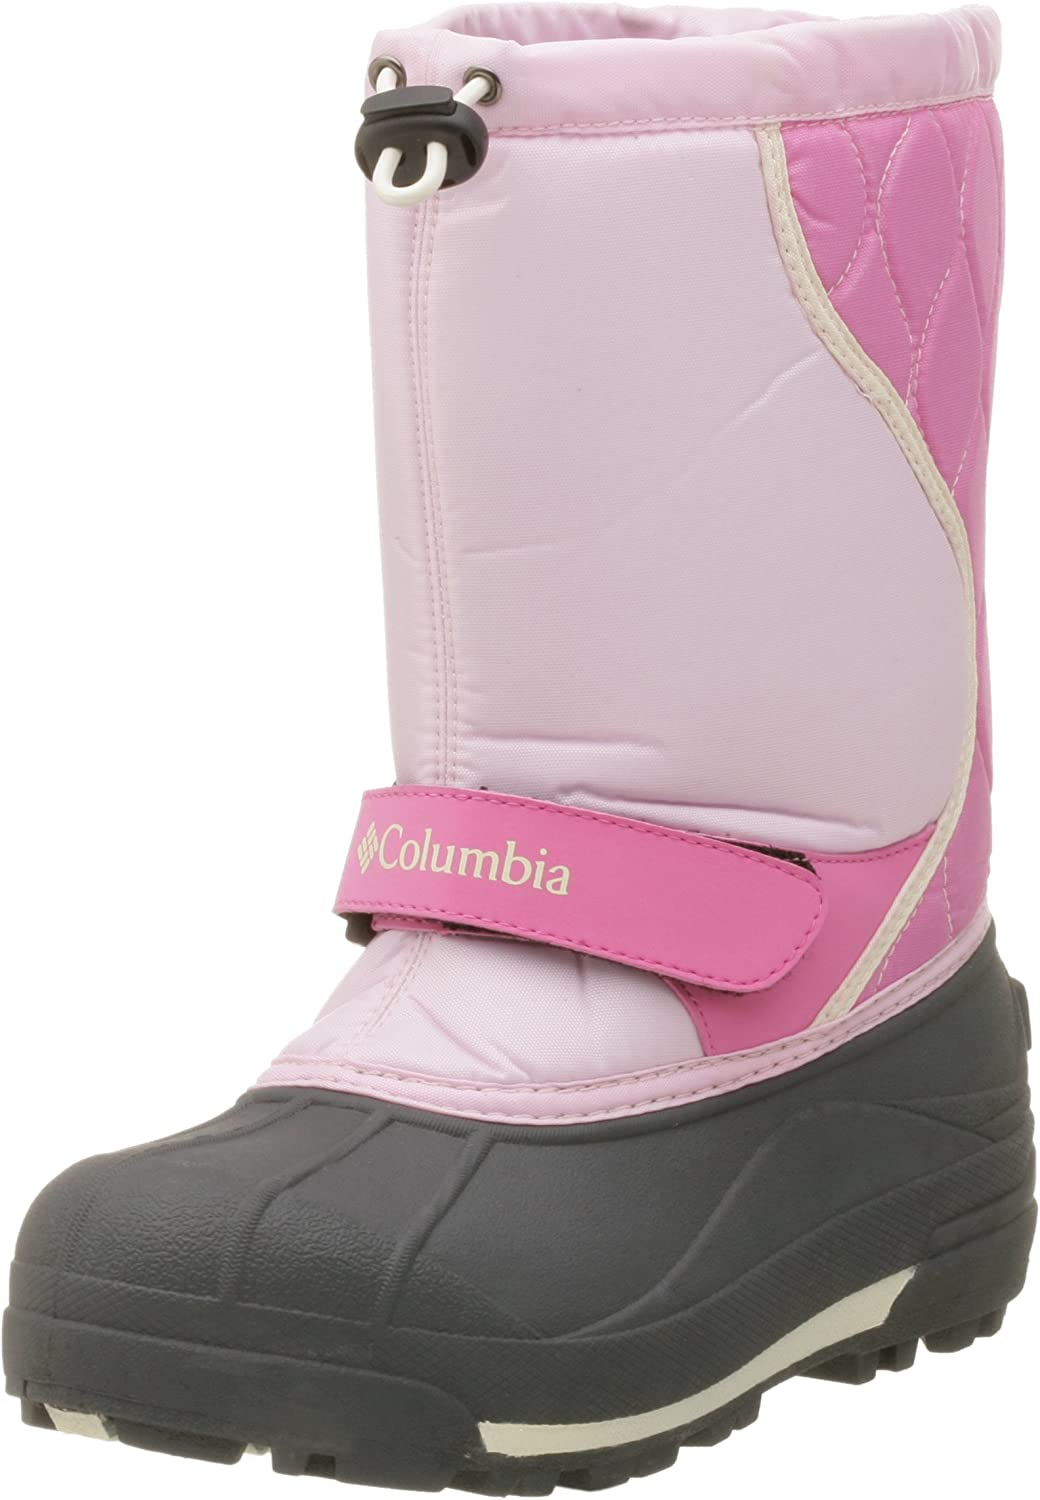 Columbia Attention brand Little Kid Big At the price of surprise Boot Damsel Winter Star